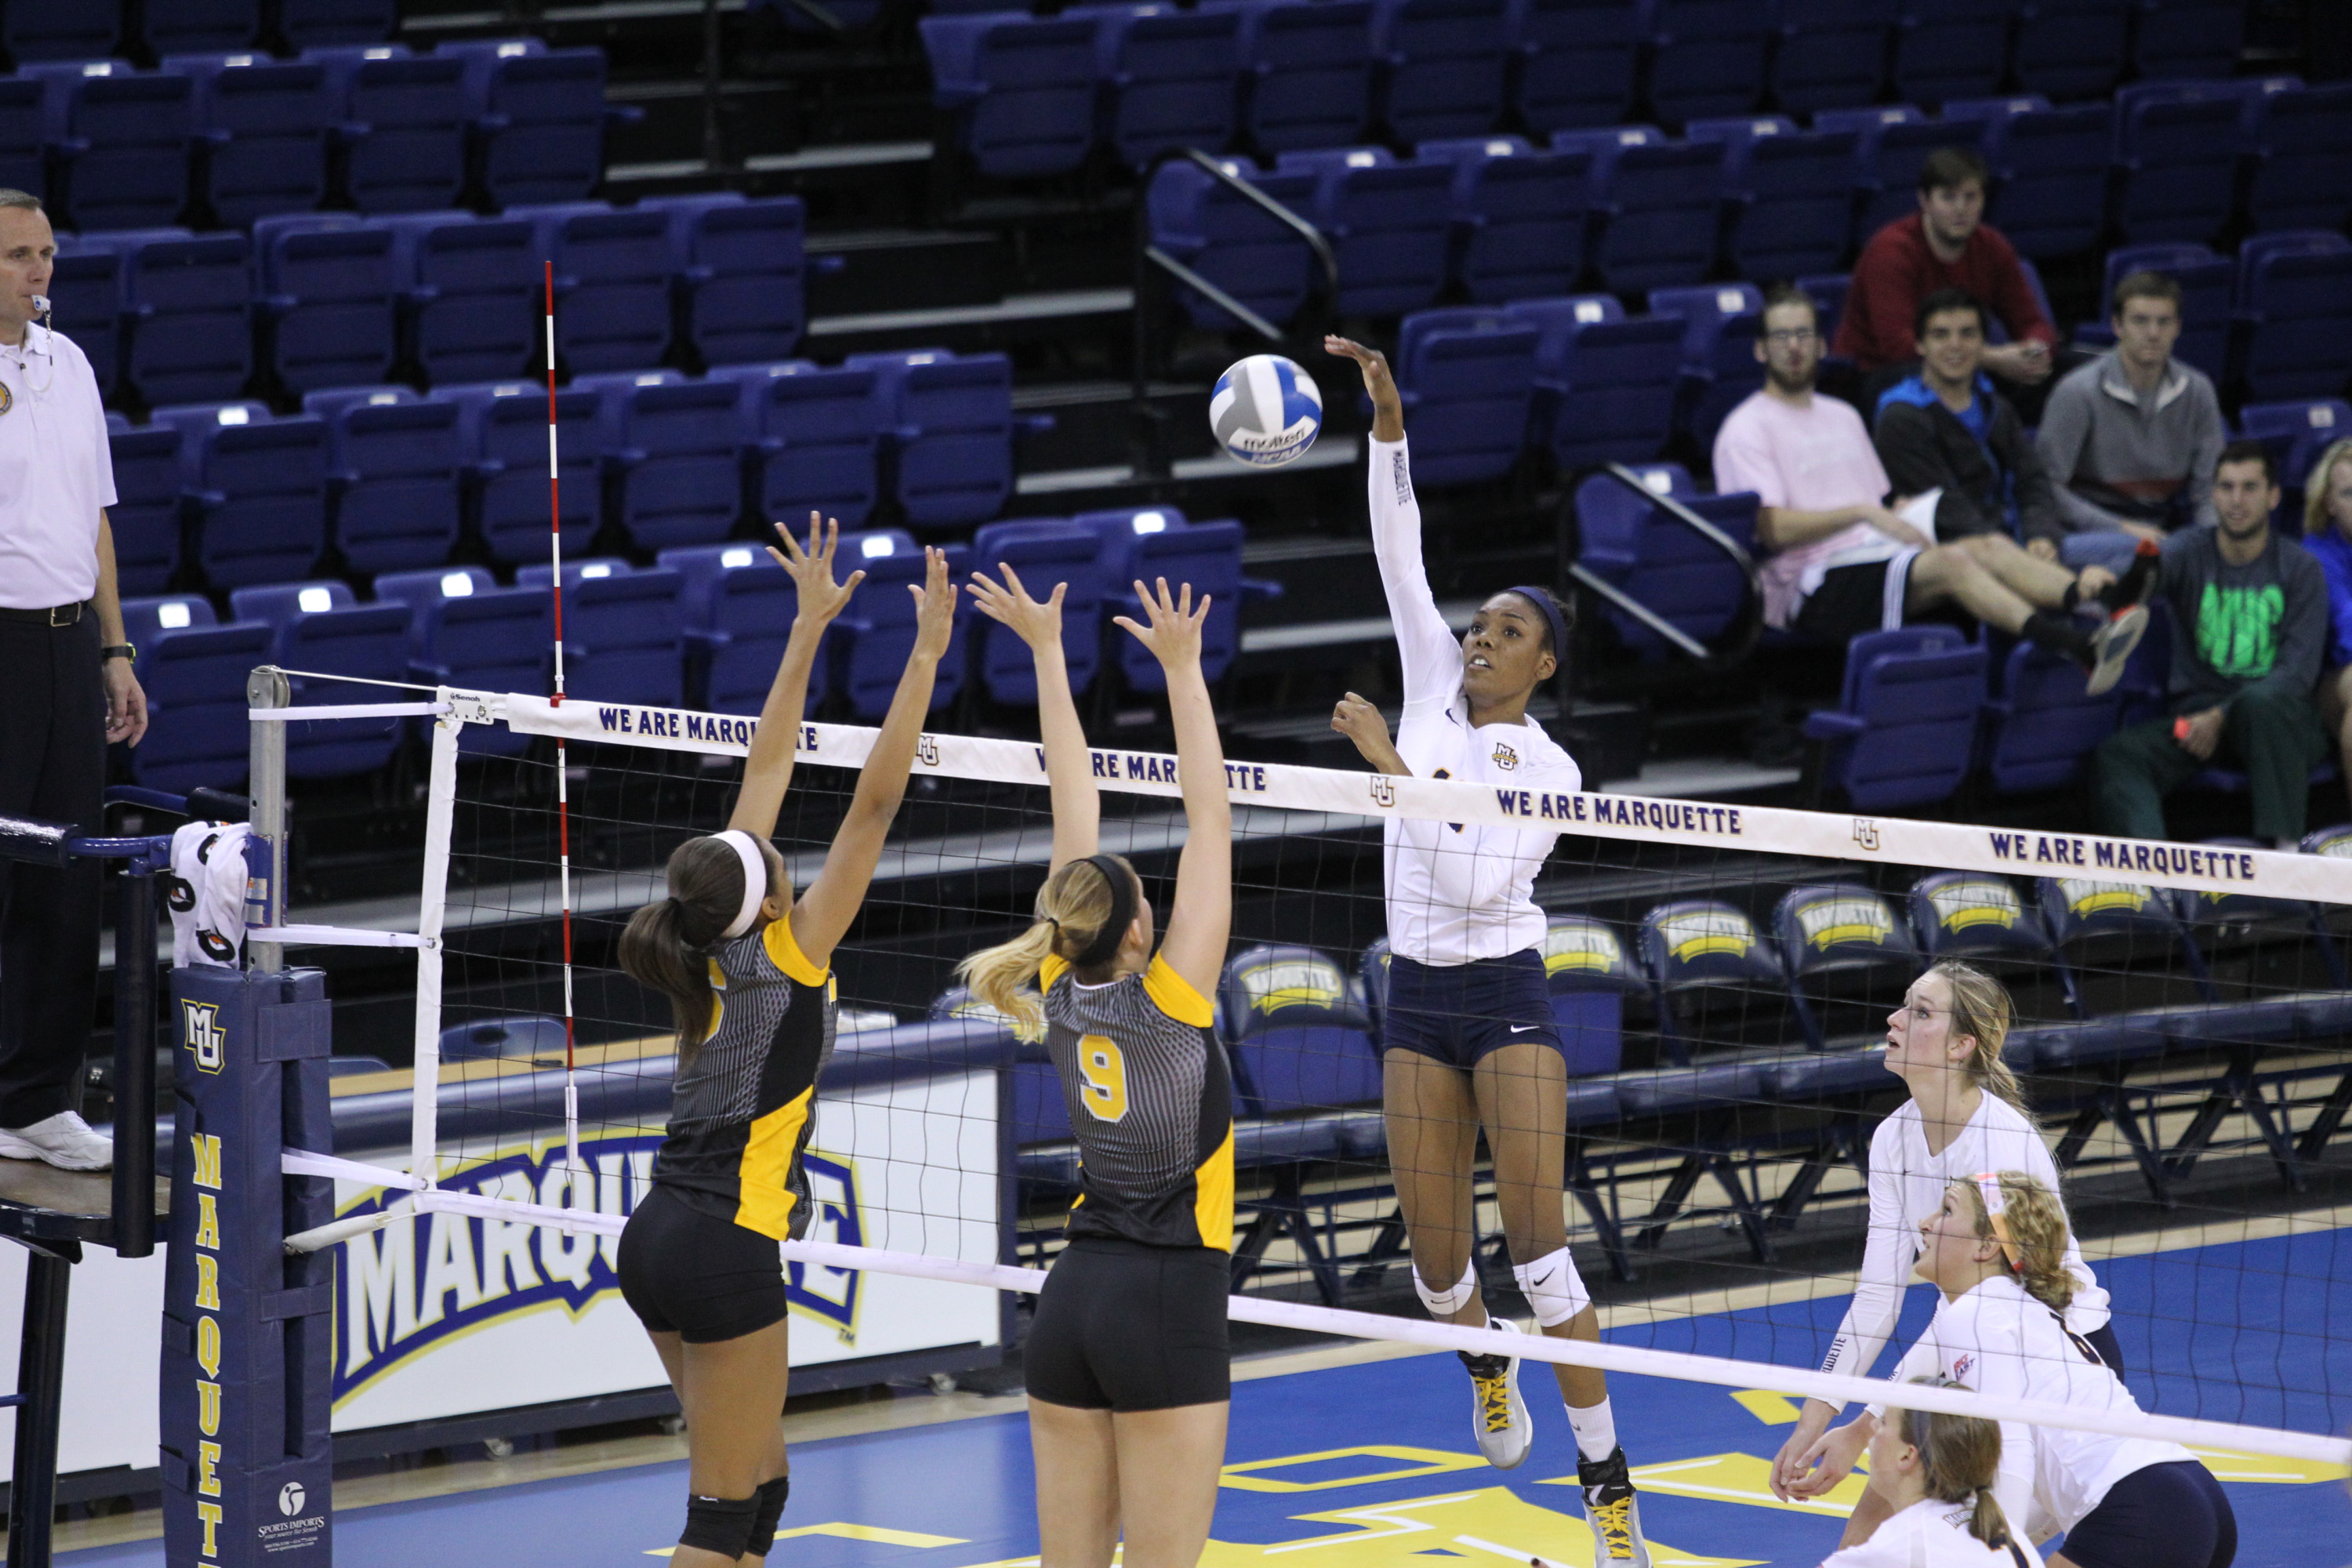 Taylor Louis continues to lead the BIG EAST with 5.05 kills per set